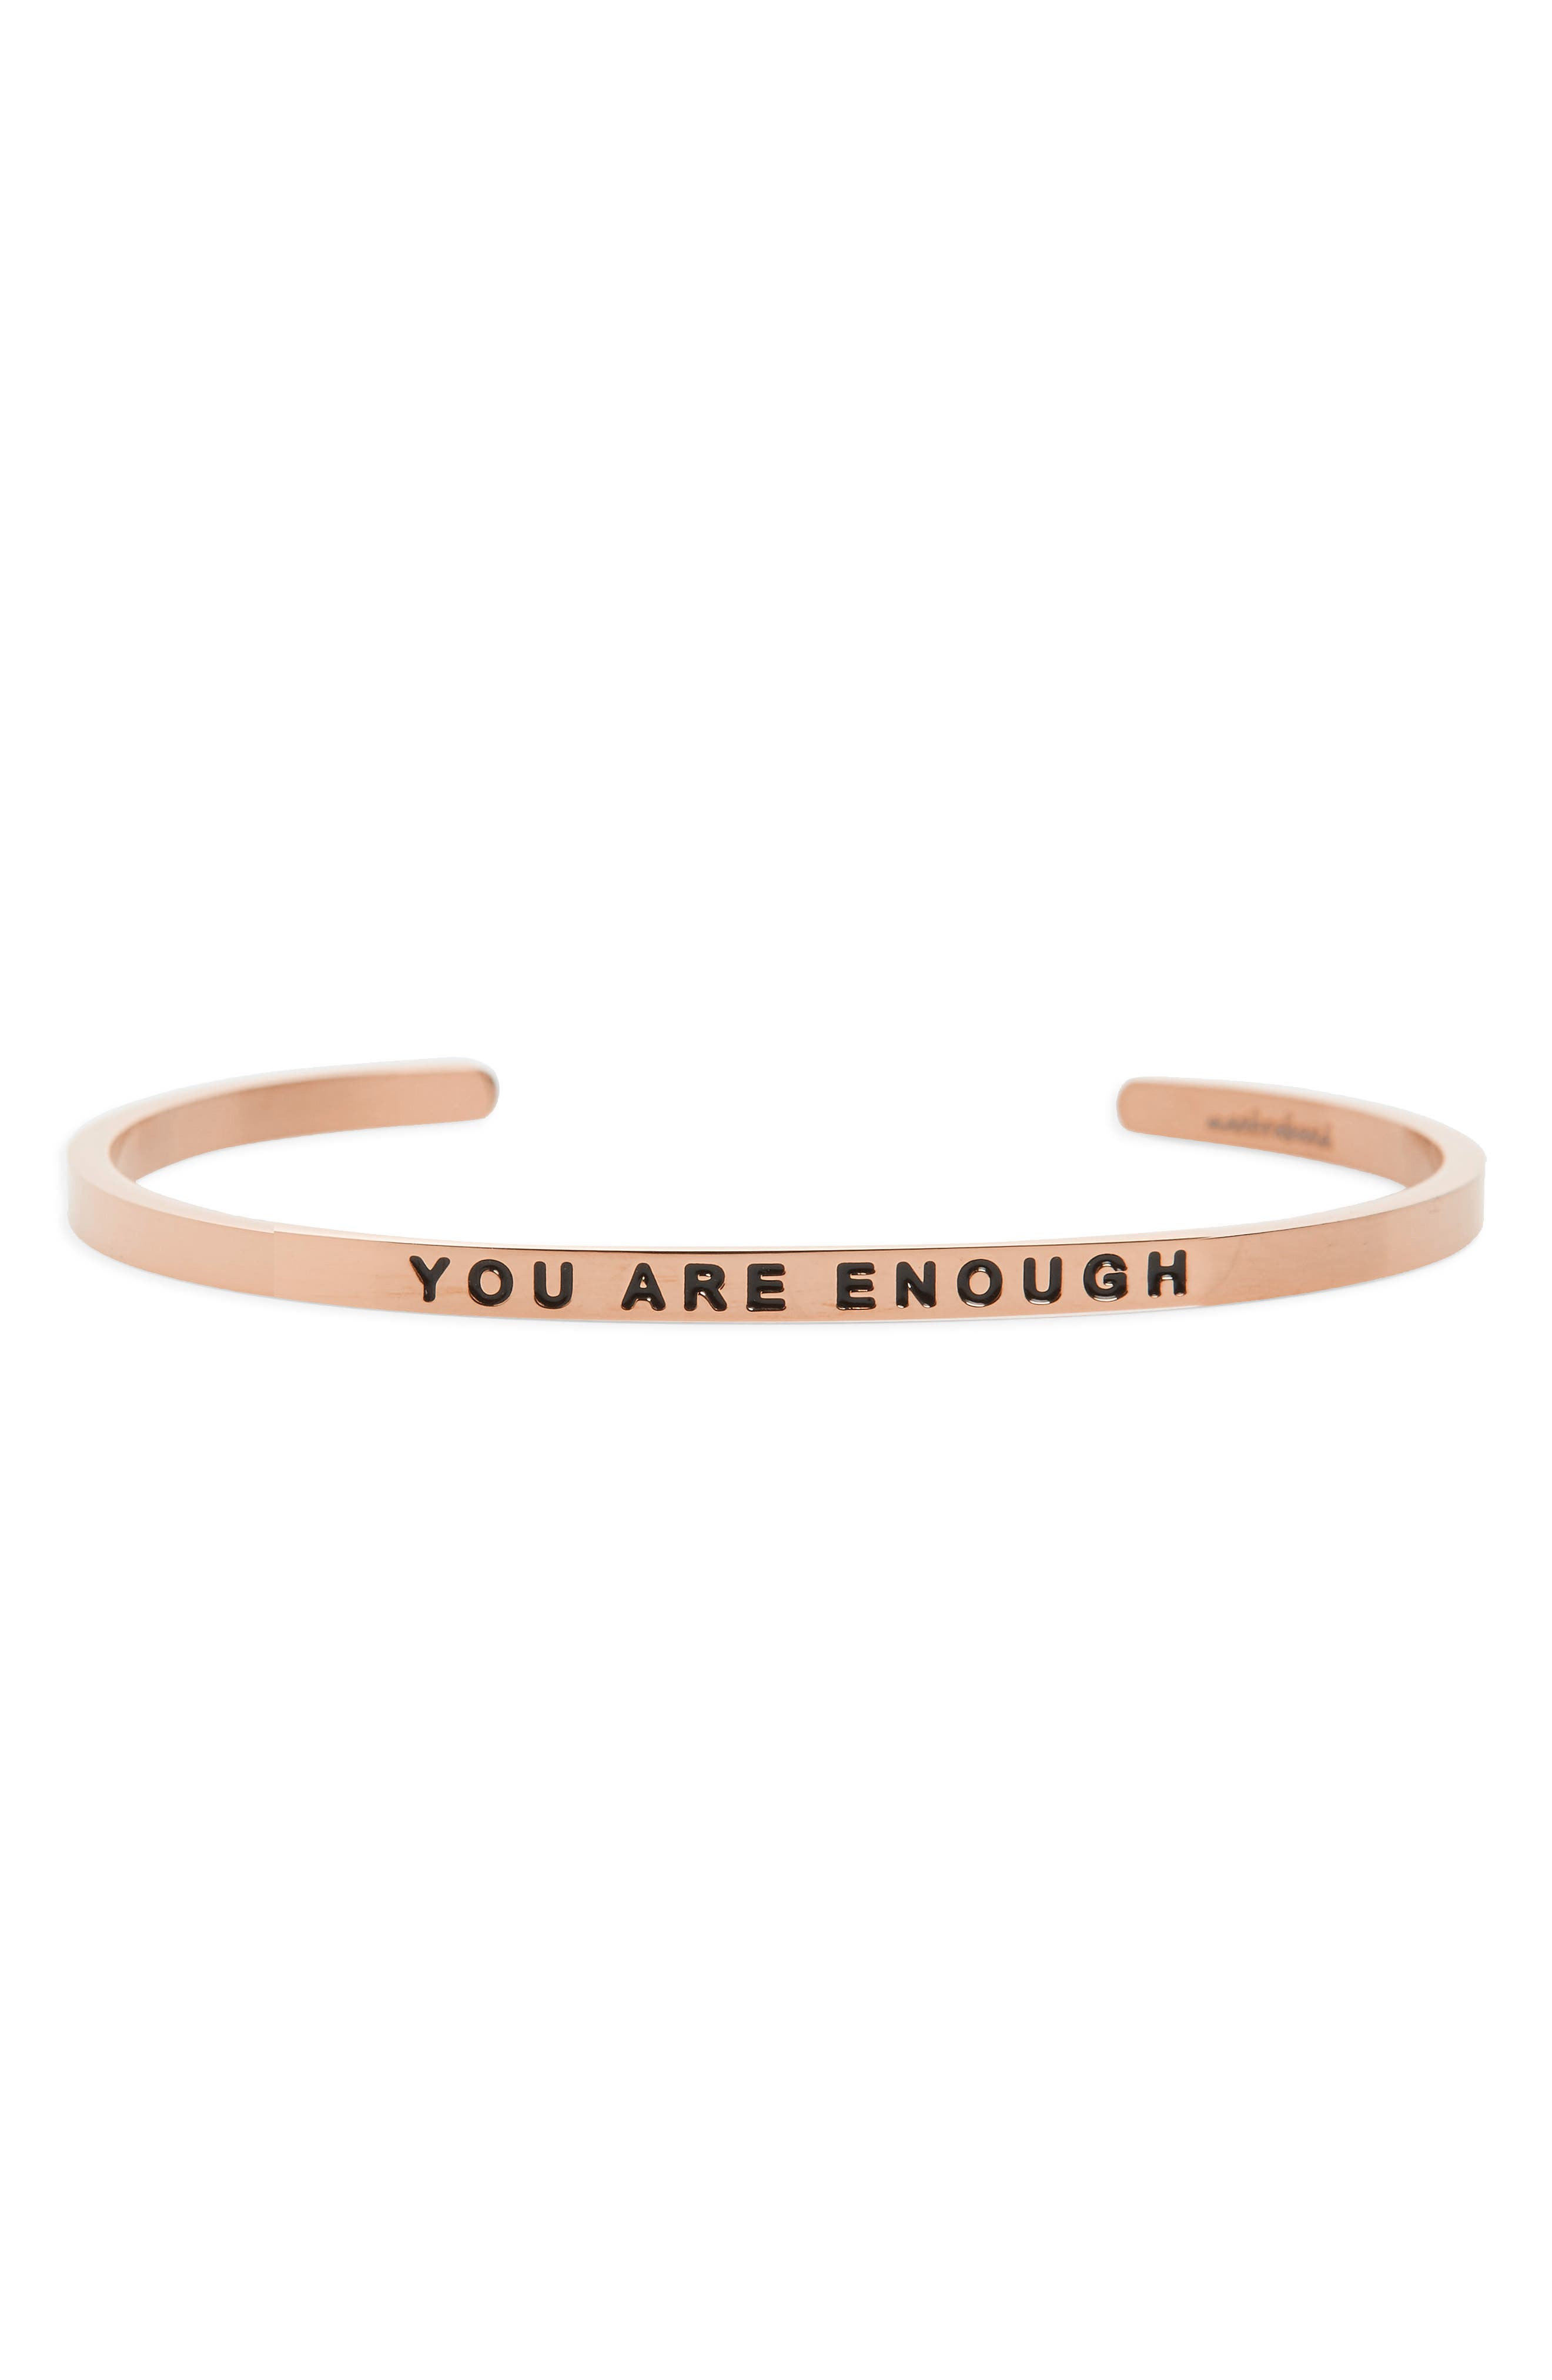 MantraBand You Are Enough Cuff